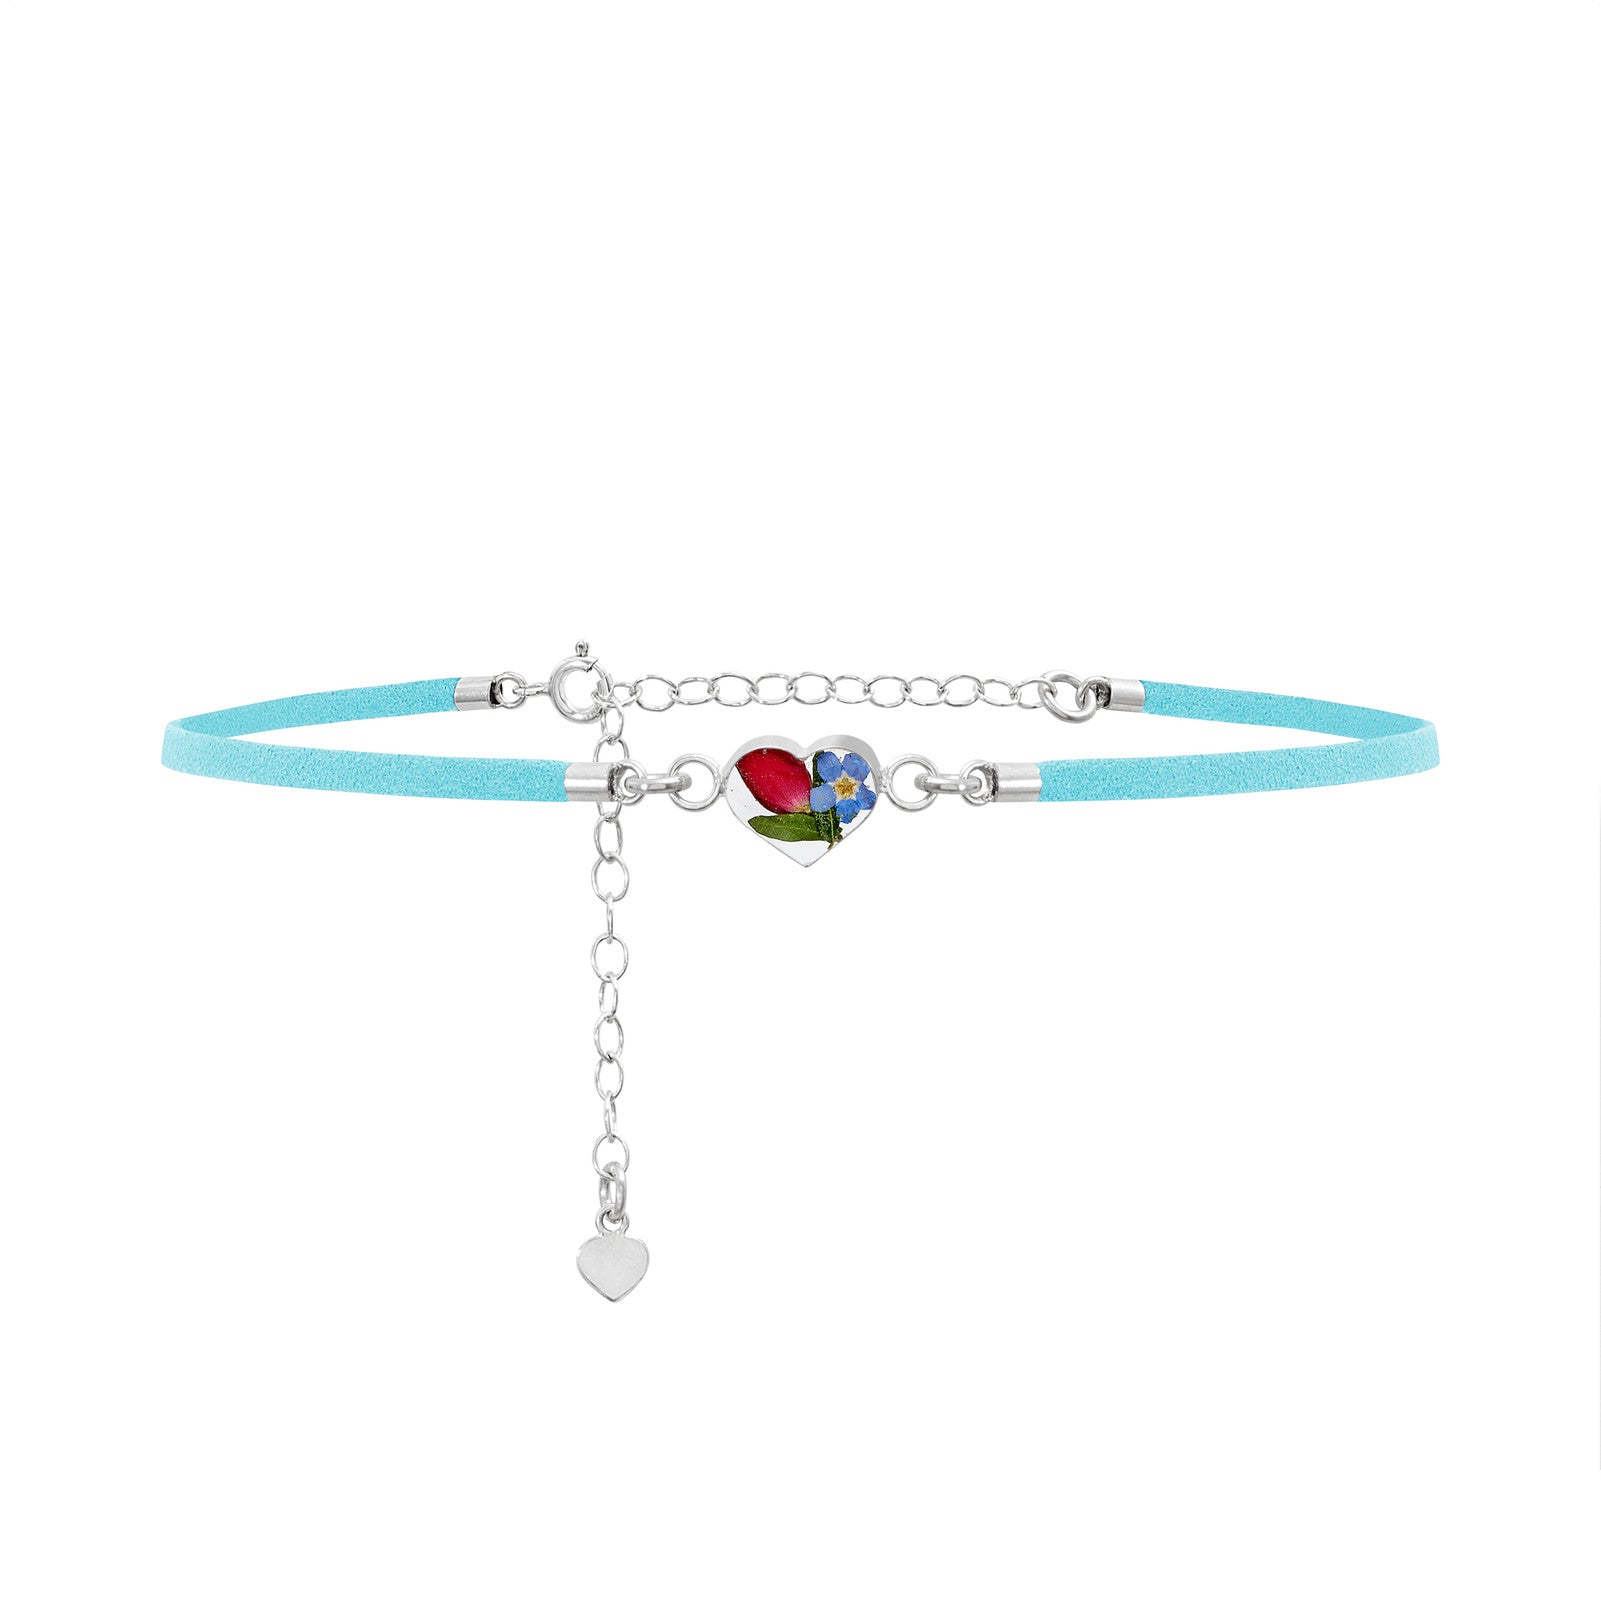 Fashion Choker-Light Blue Strap-Forget-me-not-Heart